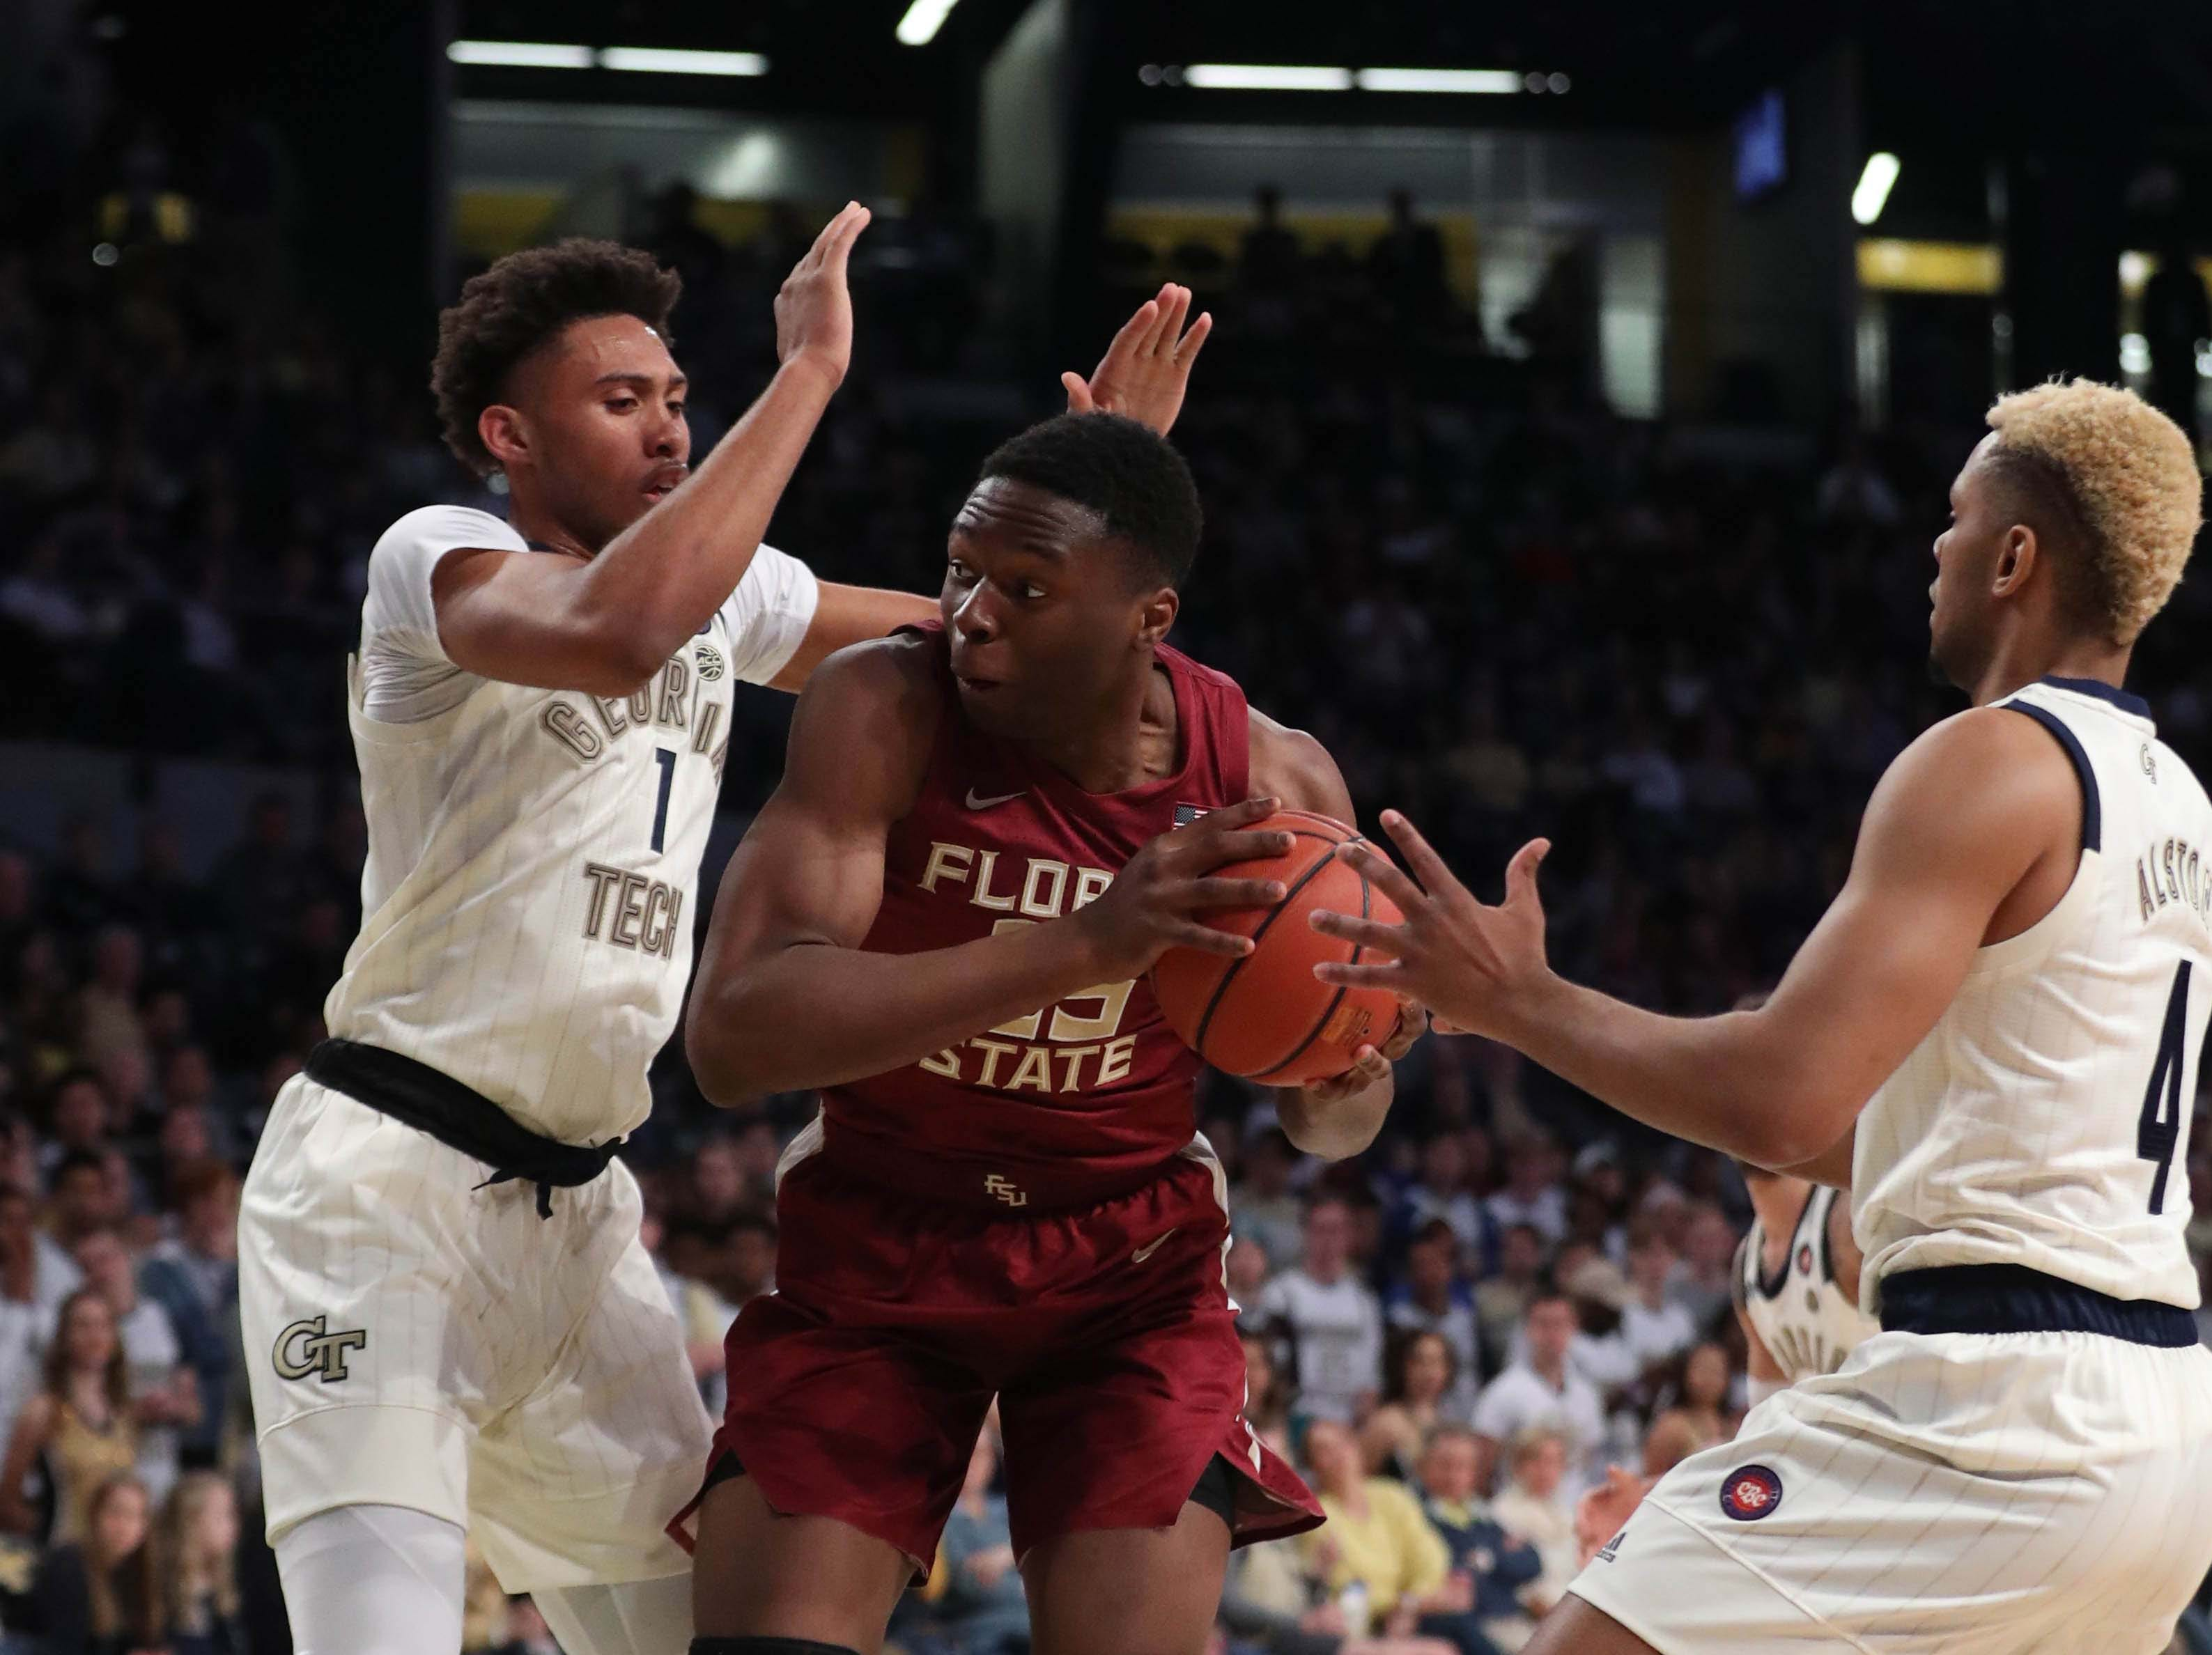 Feb 16, 2019; Atlanta, GA, USA; Florida State Seminoles forward Mfiondu Kabengele (25) is guarded by Georgia Tech Yellow Jackets forward James Banks III (1) and guard Brandon Alston (4) in the first half at McCamish Pavilion. Mandatory Credit: Jason Getz-USA TODAY Sports